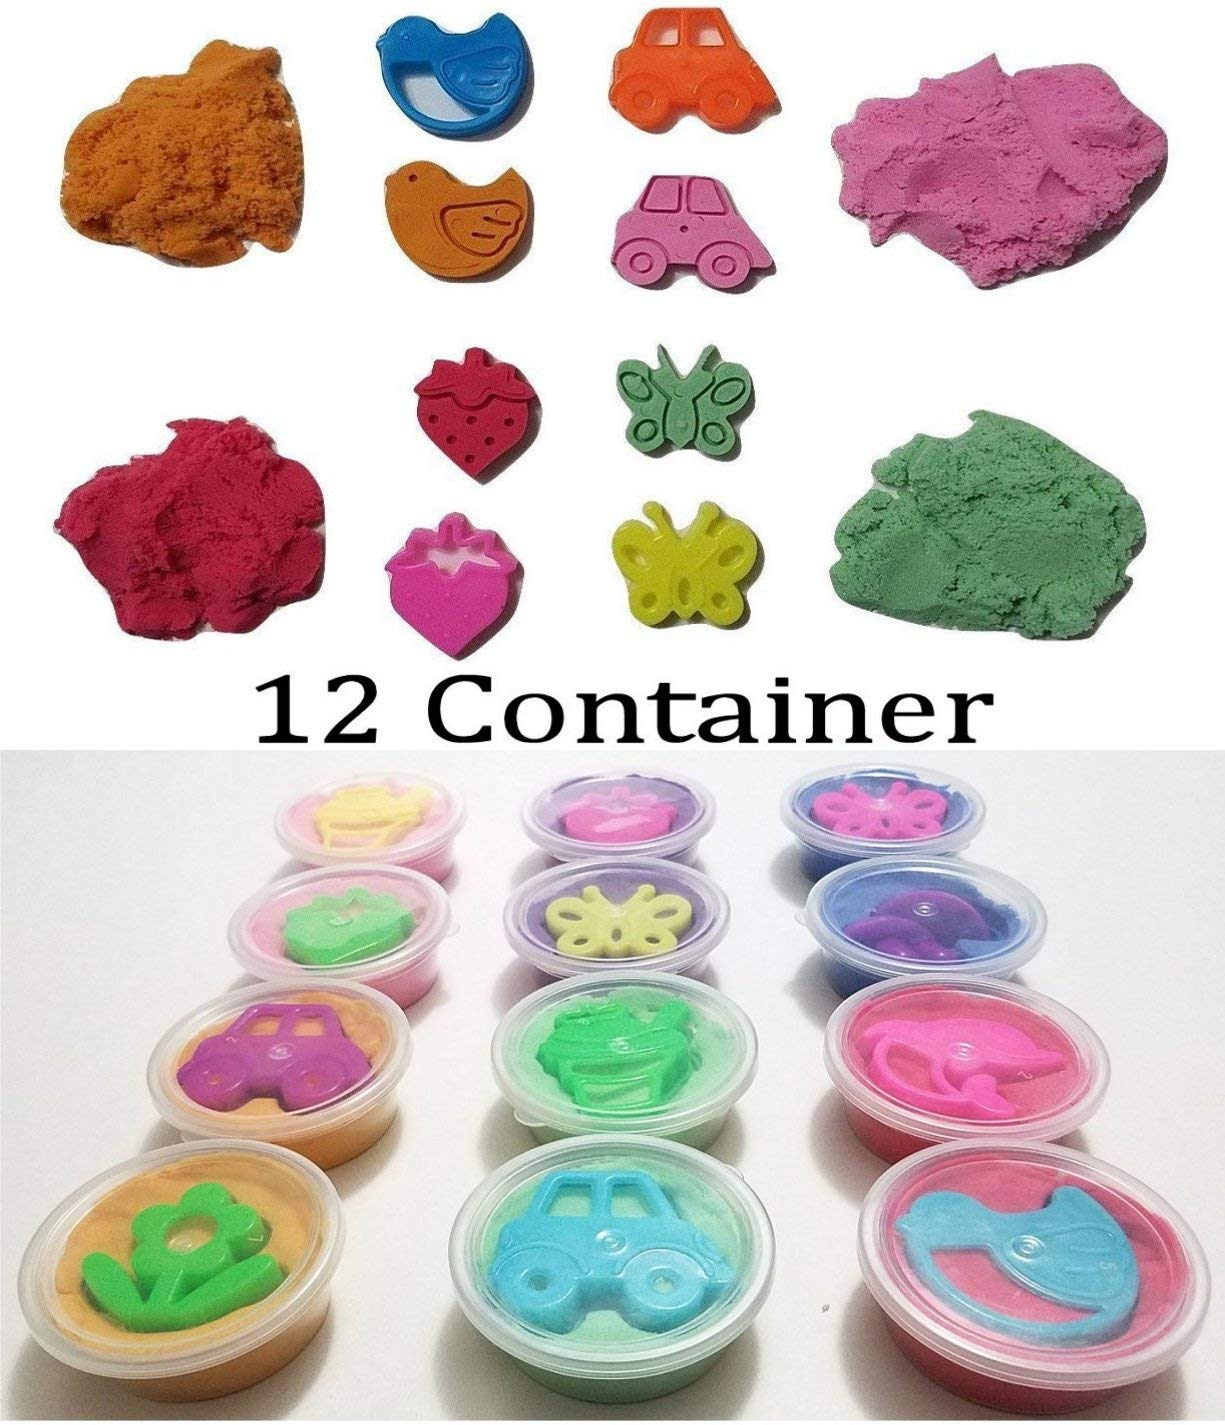 JM 12 Small Space Sand//Moon Sand//Crazy Magic Sand Mold-N-Play Educational Creative Fun Kids DIY Toy Kinetic